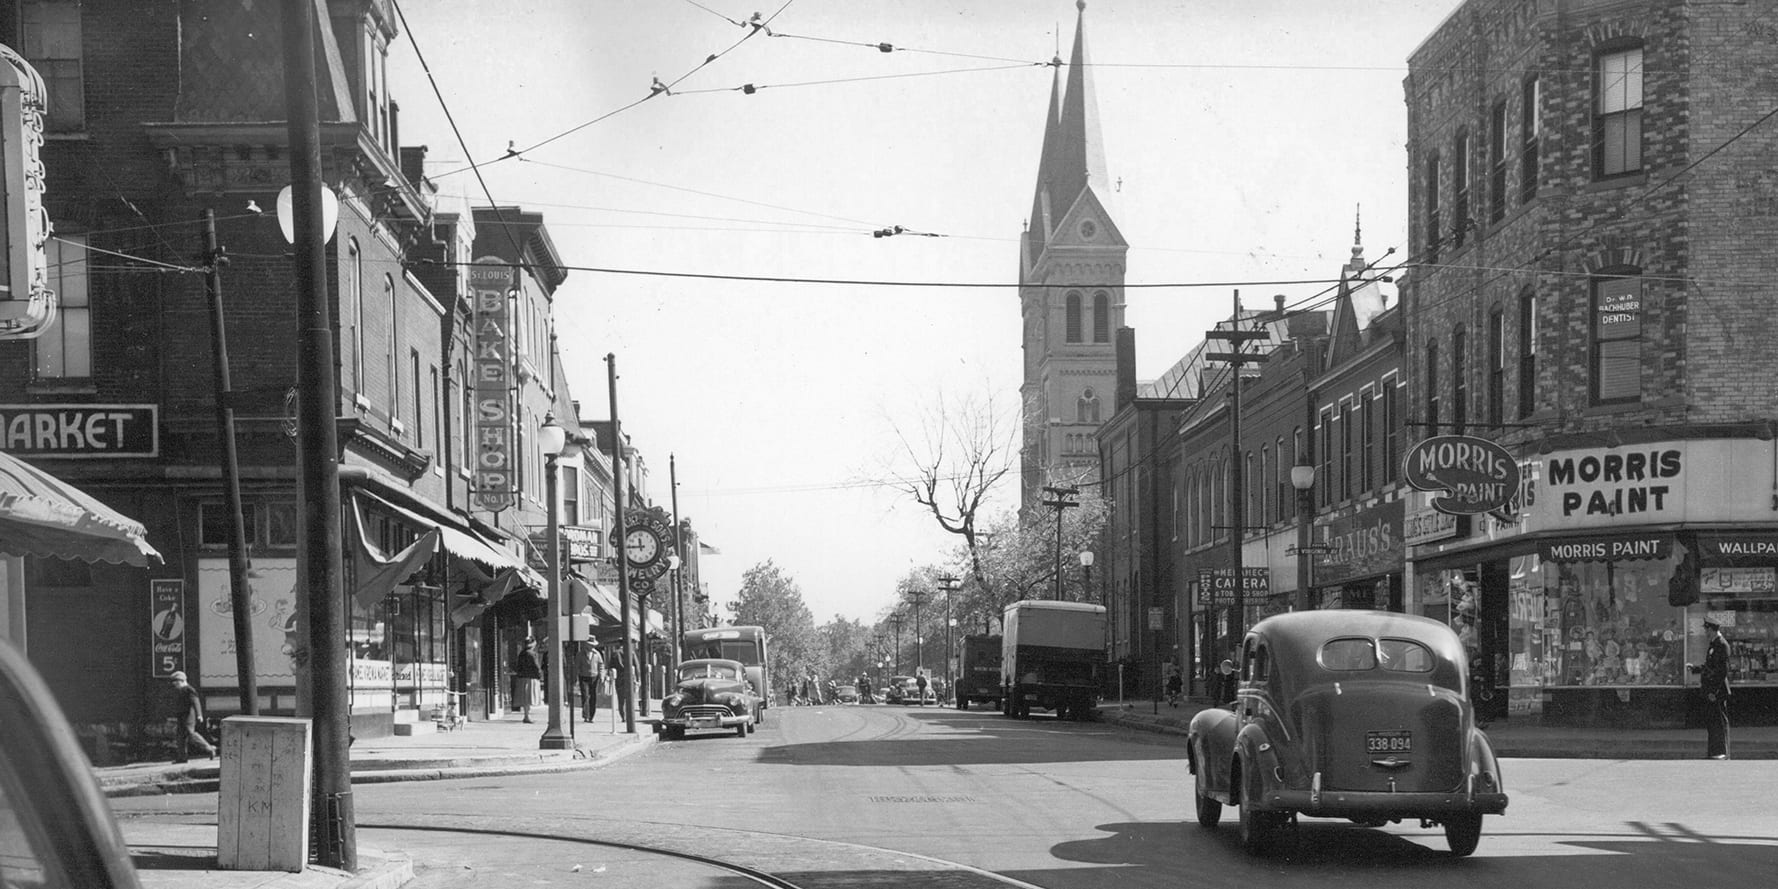 Meramec Street at Virginia Avenue looking east in the 1950s.